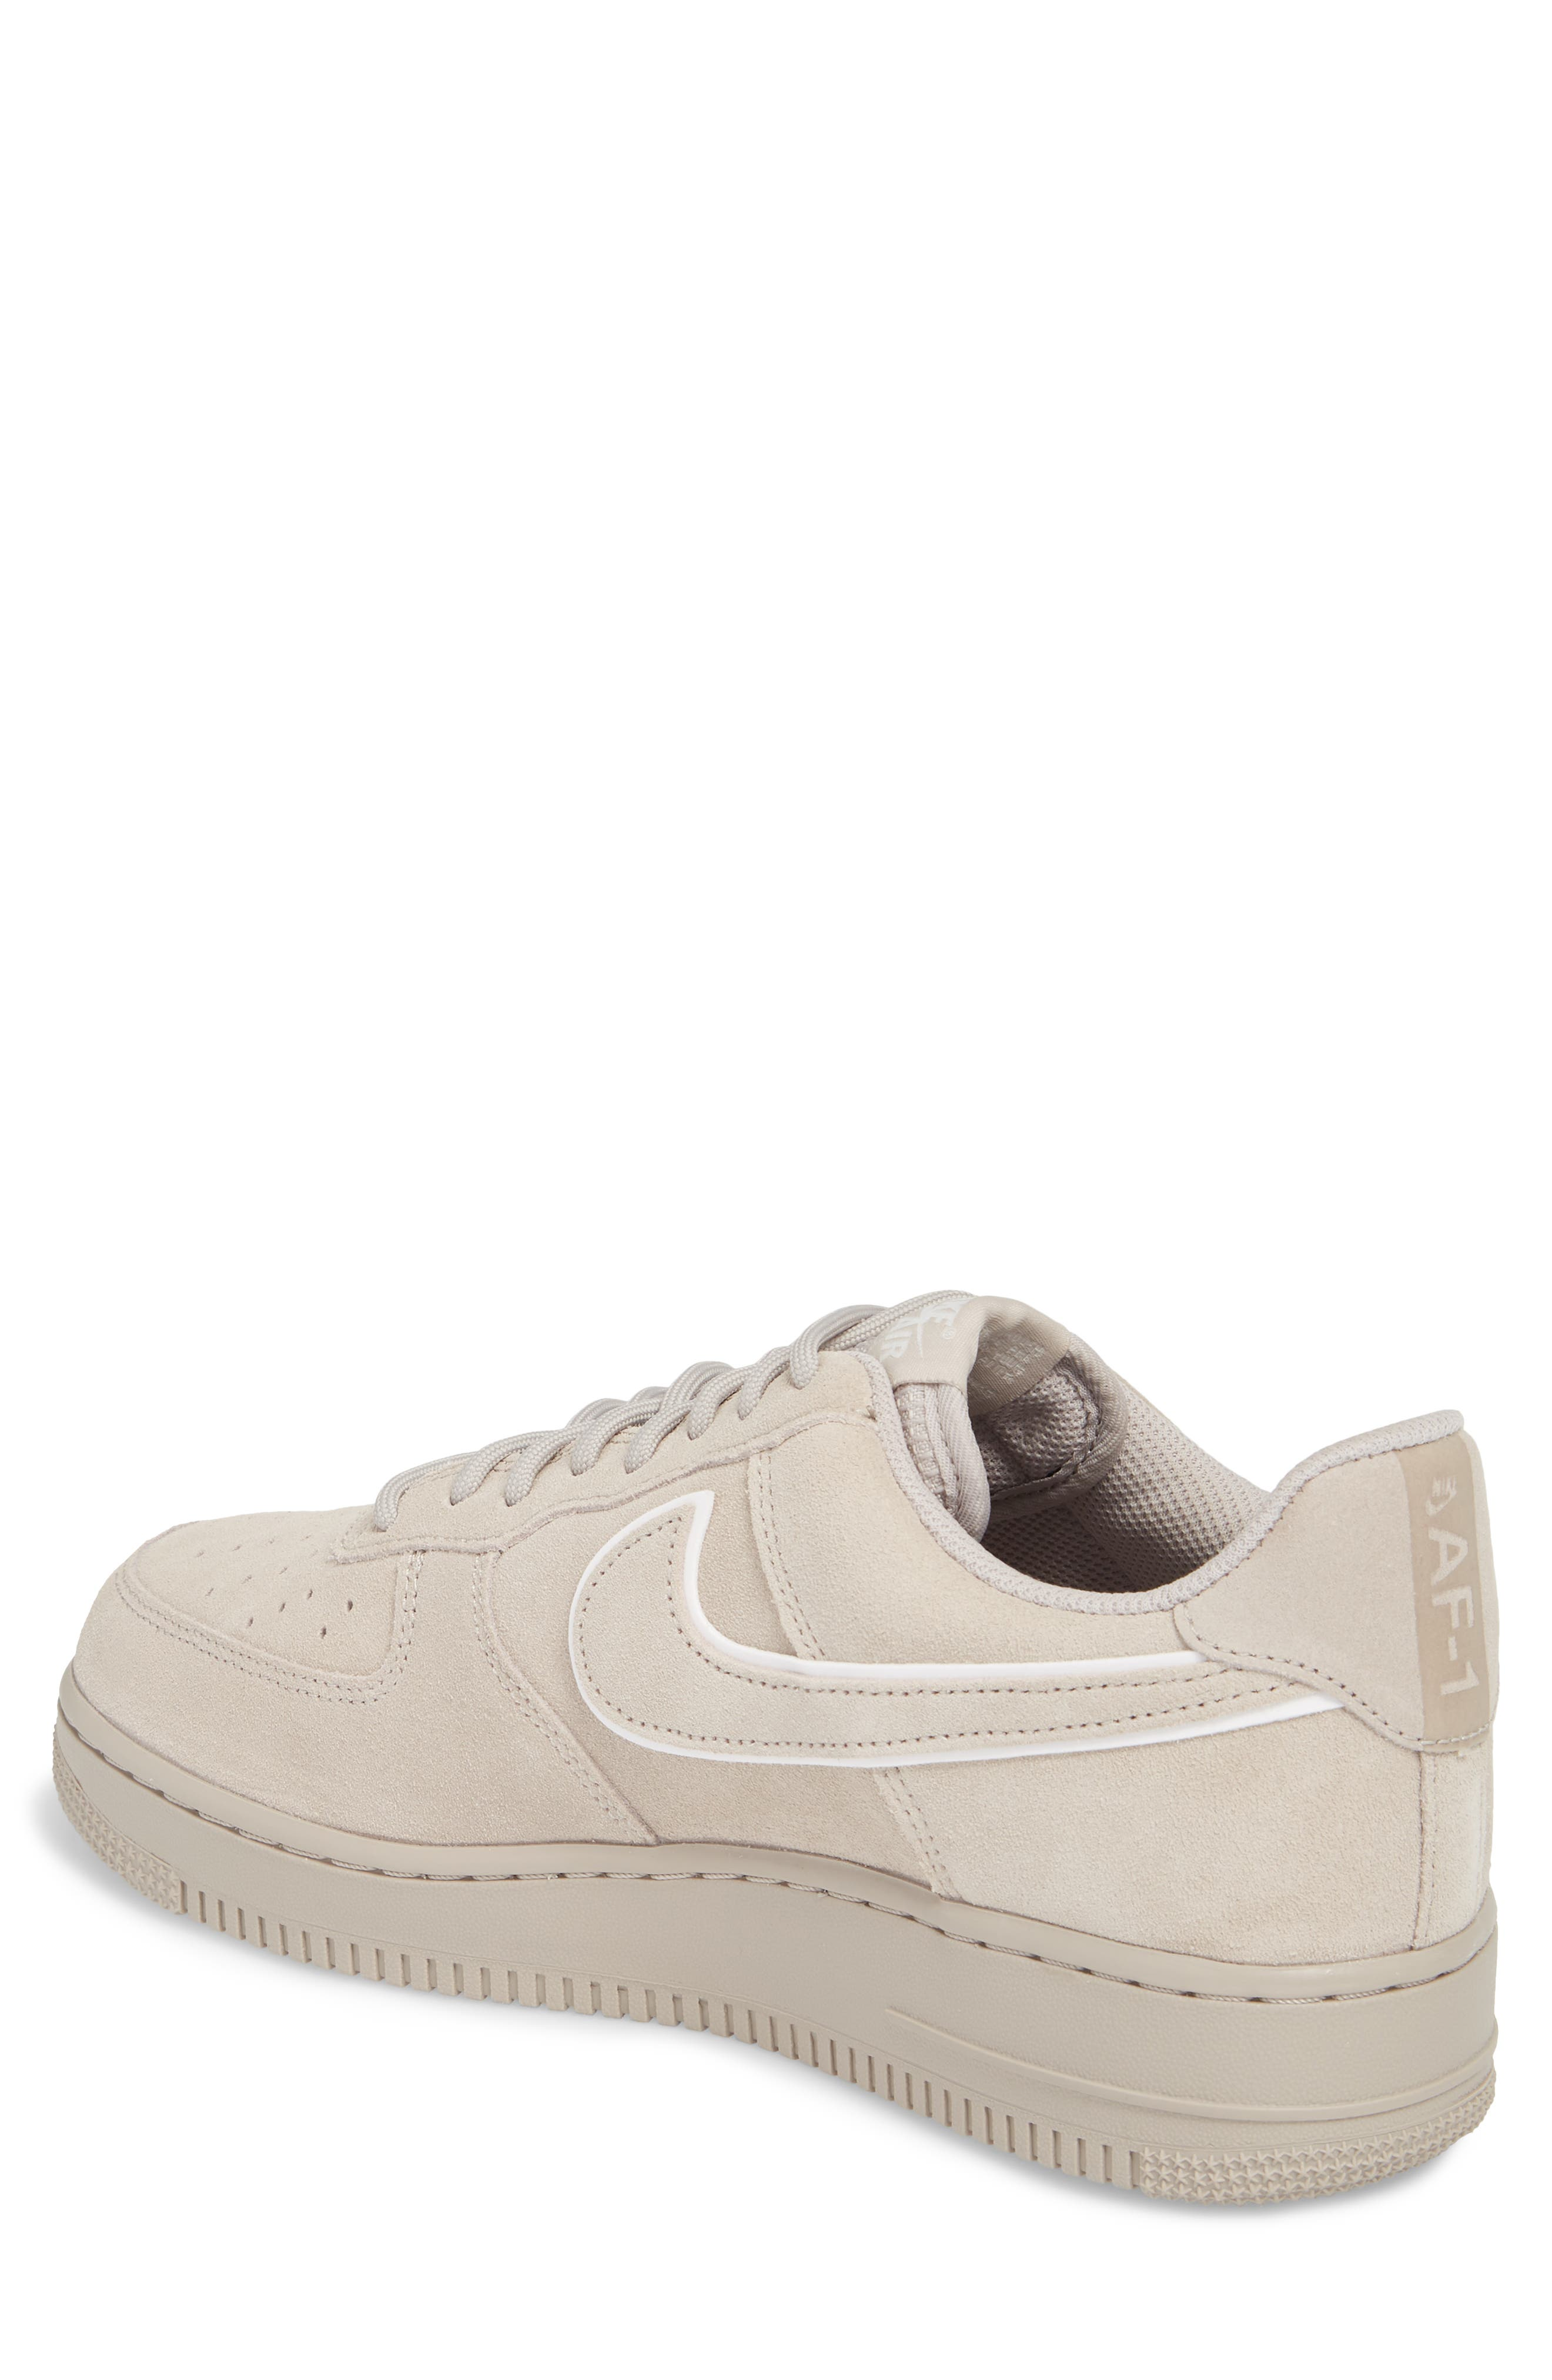 Air Force 1 '07 Low LV8 Sneaker,                             Alternate thumbnail 2, color,                             Moon Particle/ Sepia Stone